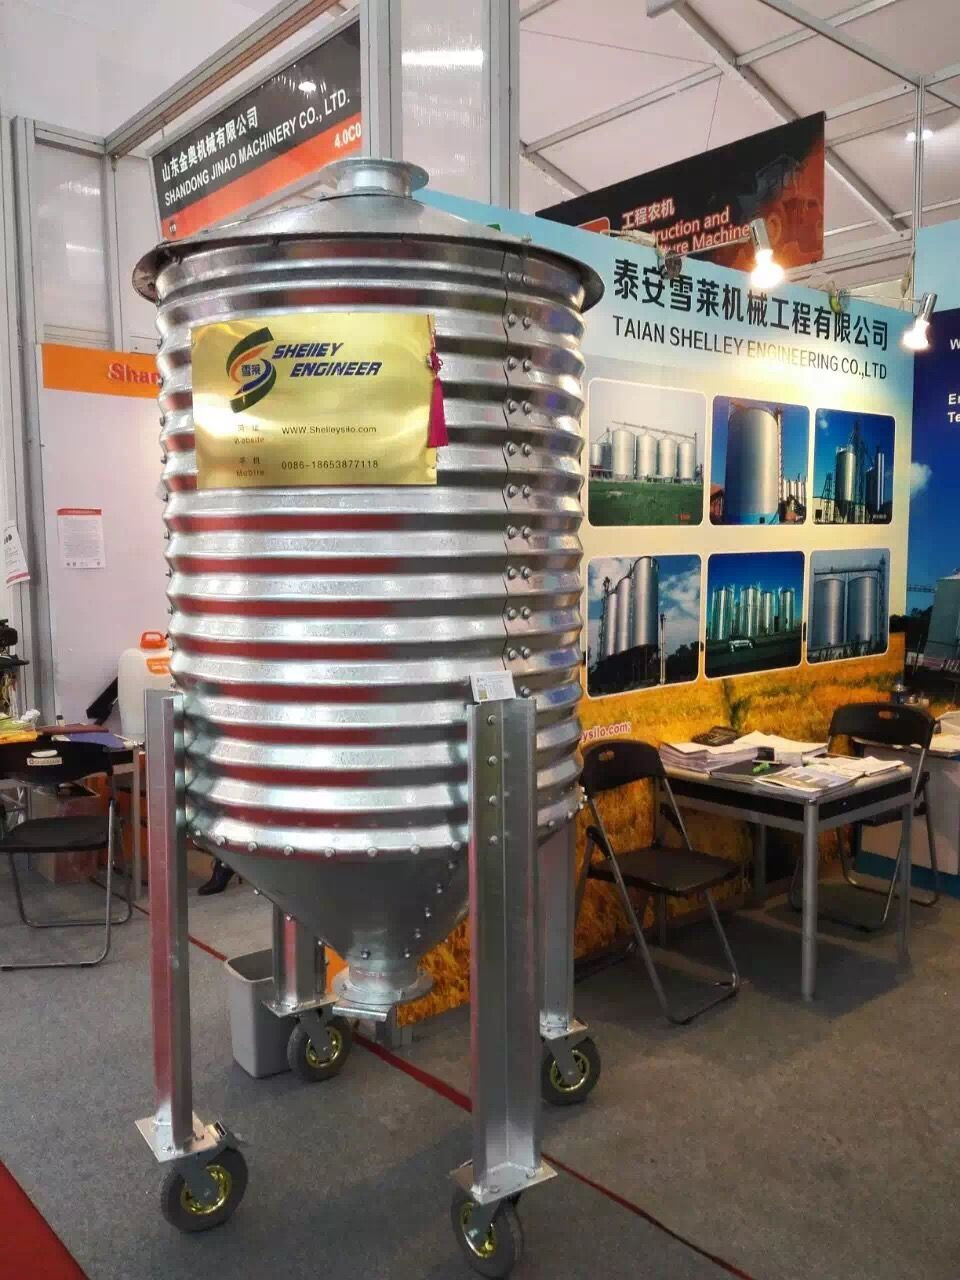 hight resolution of this is 1ton mini silo used for grain pellet or any other materials pellets this 1 ton mini silo is made of galvanized steel sheet and it s movable type